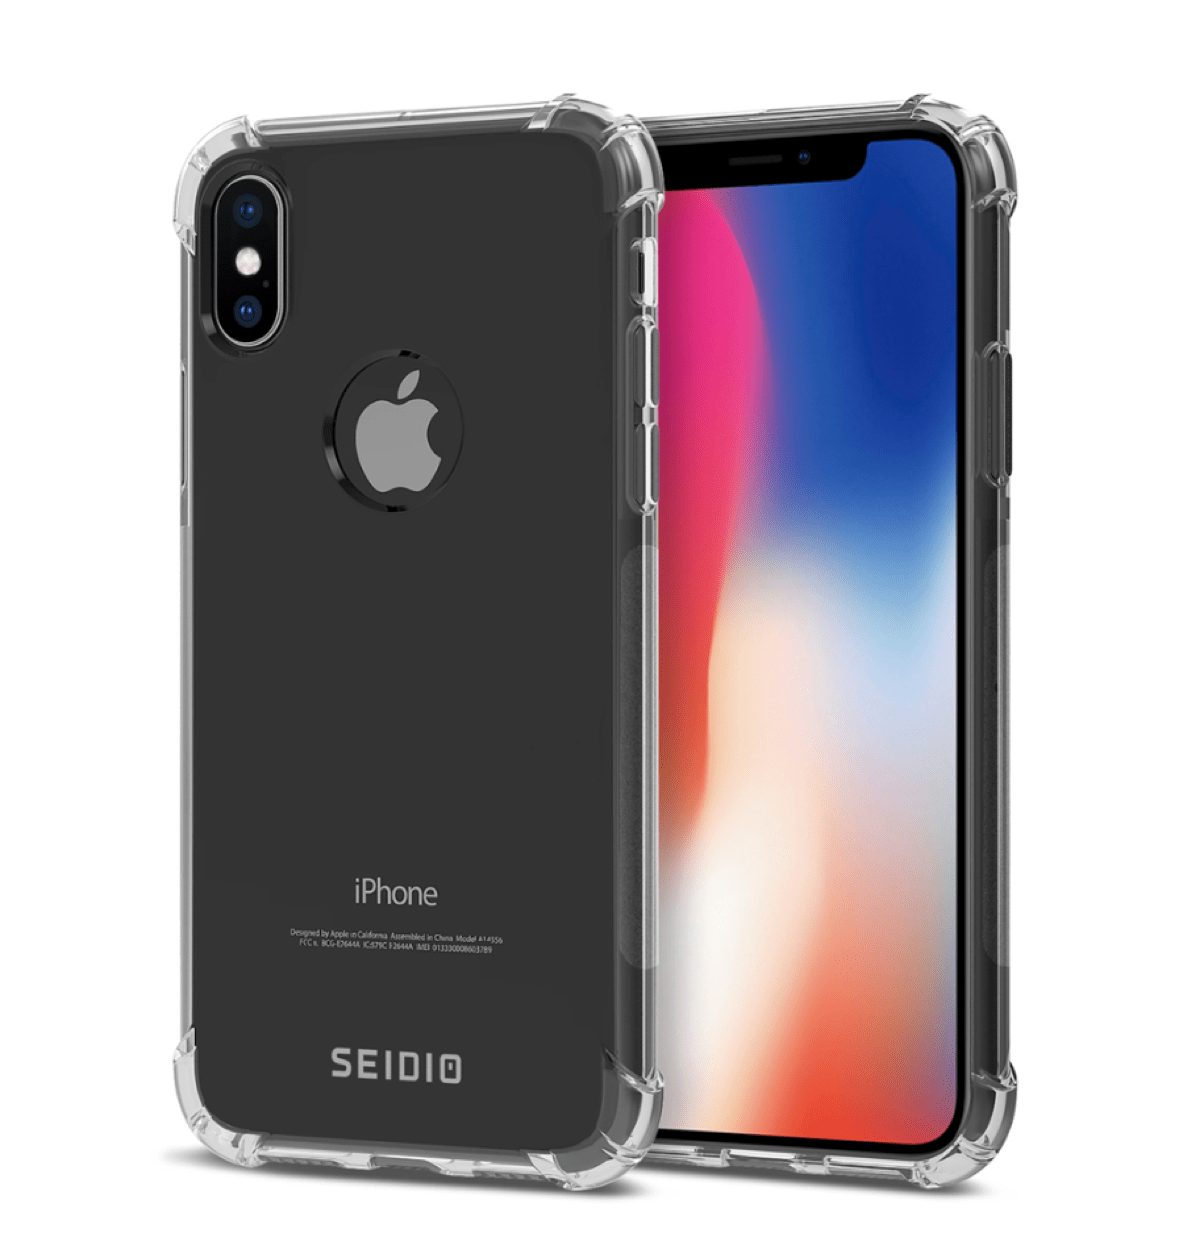 newest 10c96 5a095 6 Clear iPhone X Cases to Show Off Your Purchase - The Mac Observer